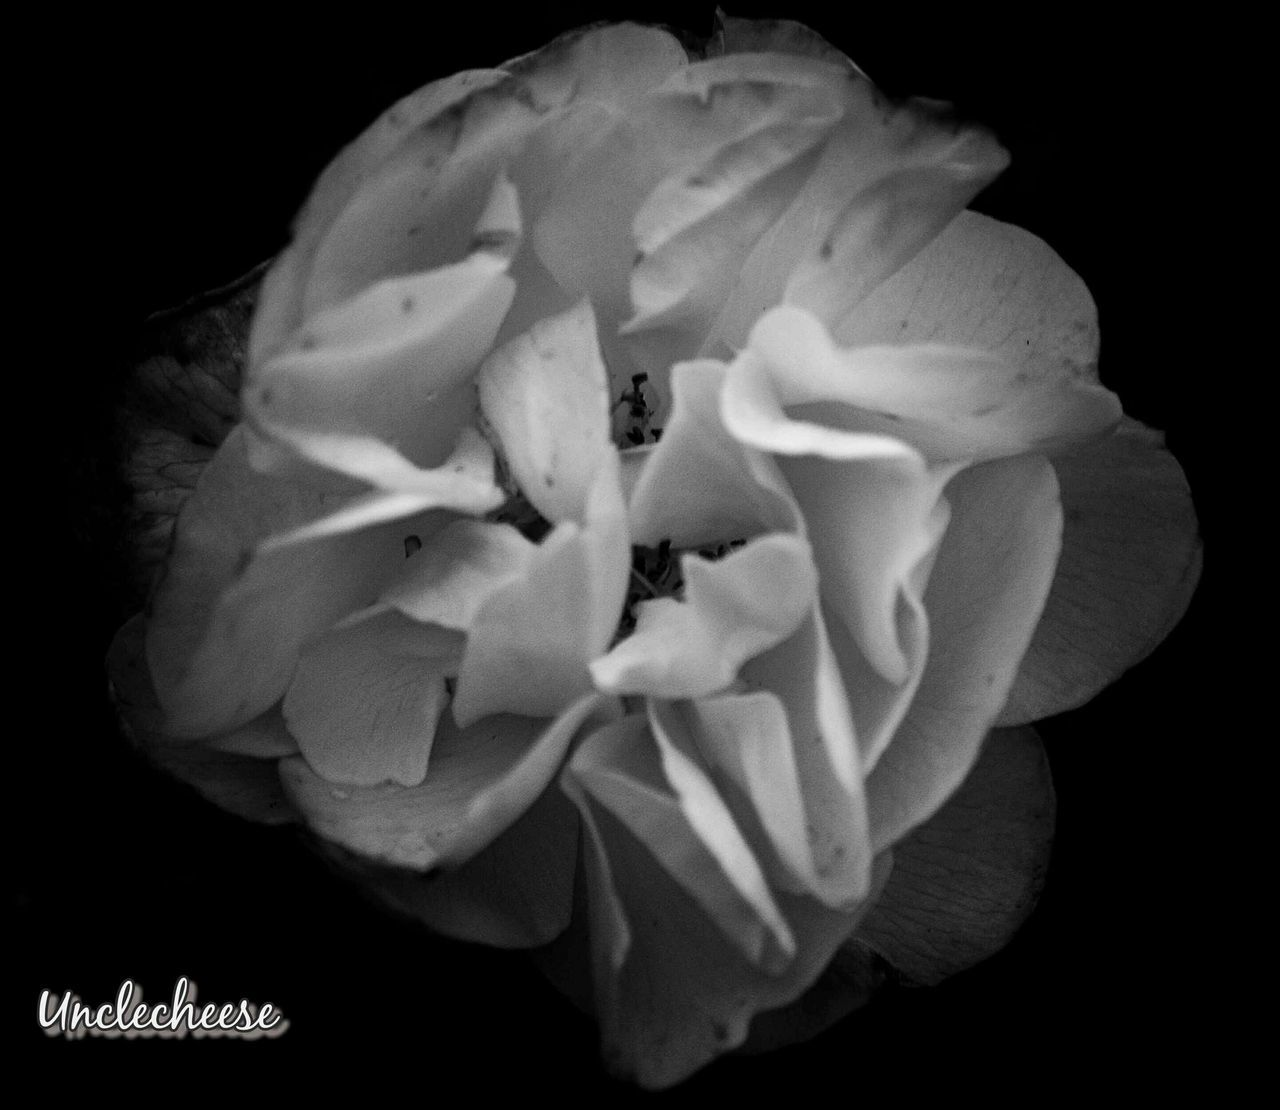 flower, petal, flower head, beauty in nature, nature, fragility, growth, freshness, black background, no people, plant, blooming, pollen, wild rose, close-up, studio shot, night, outdoors